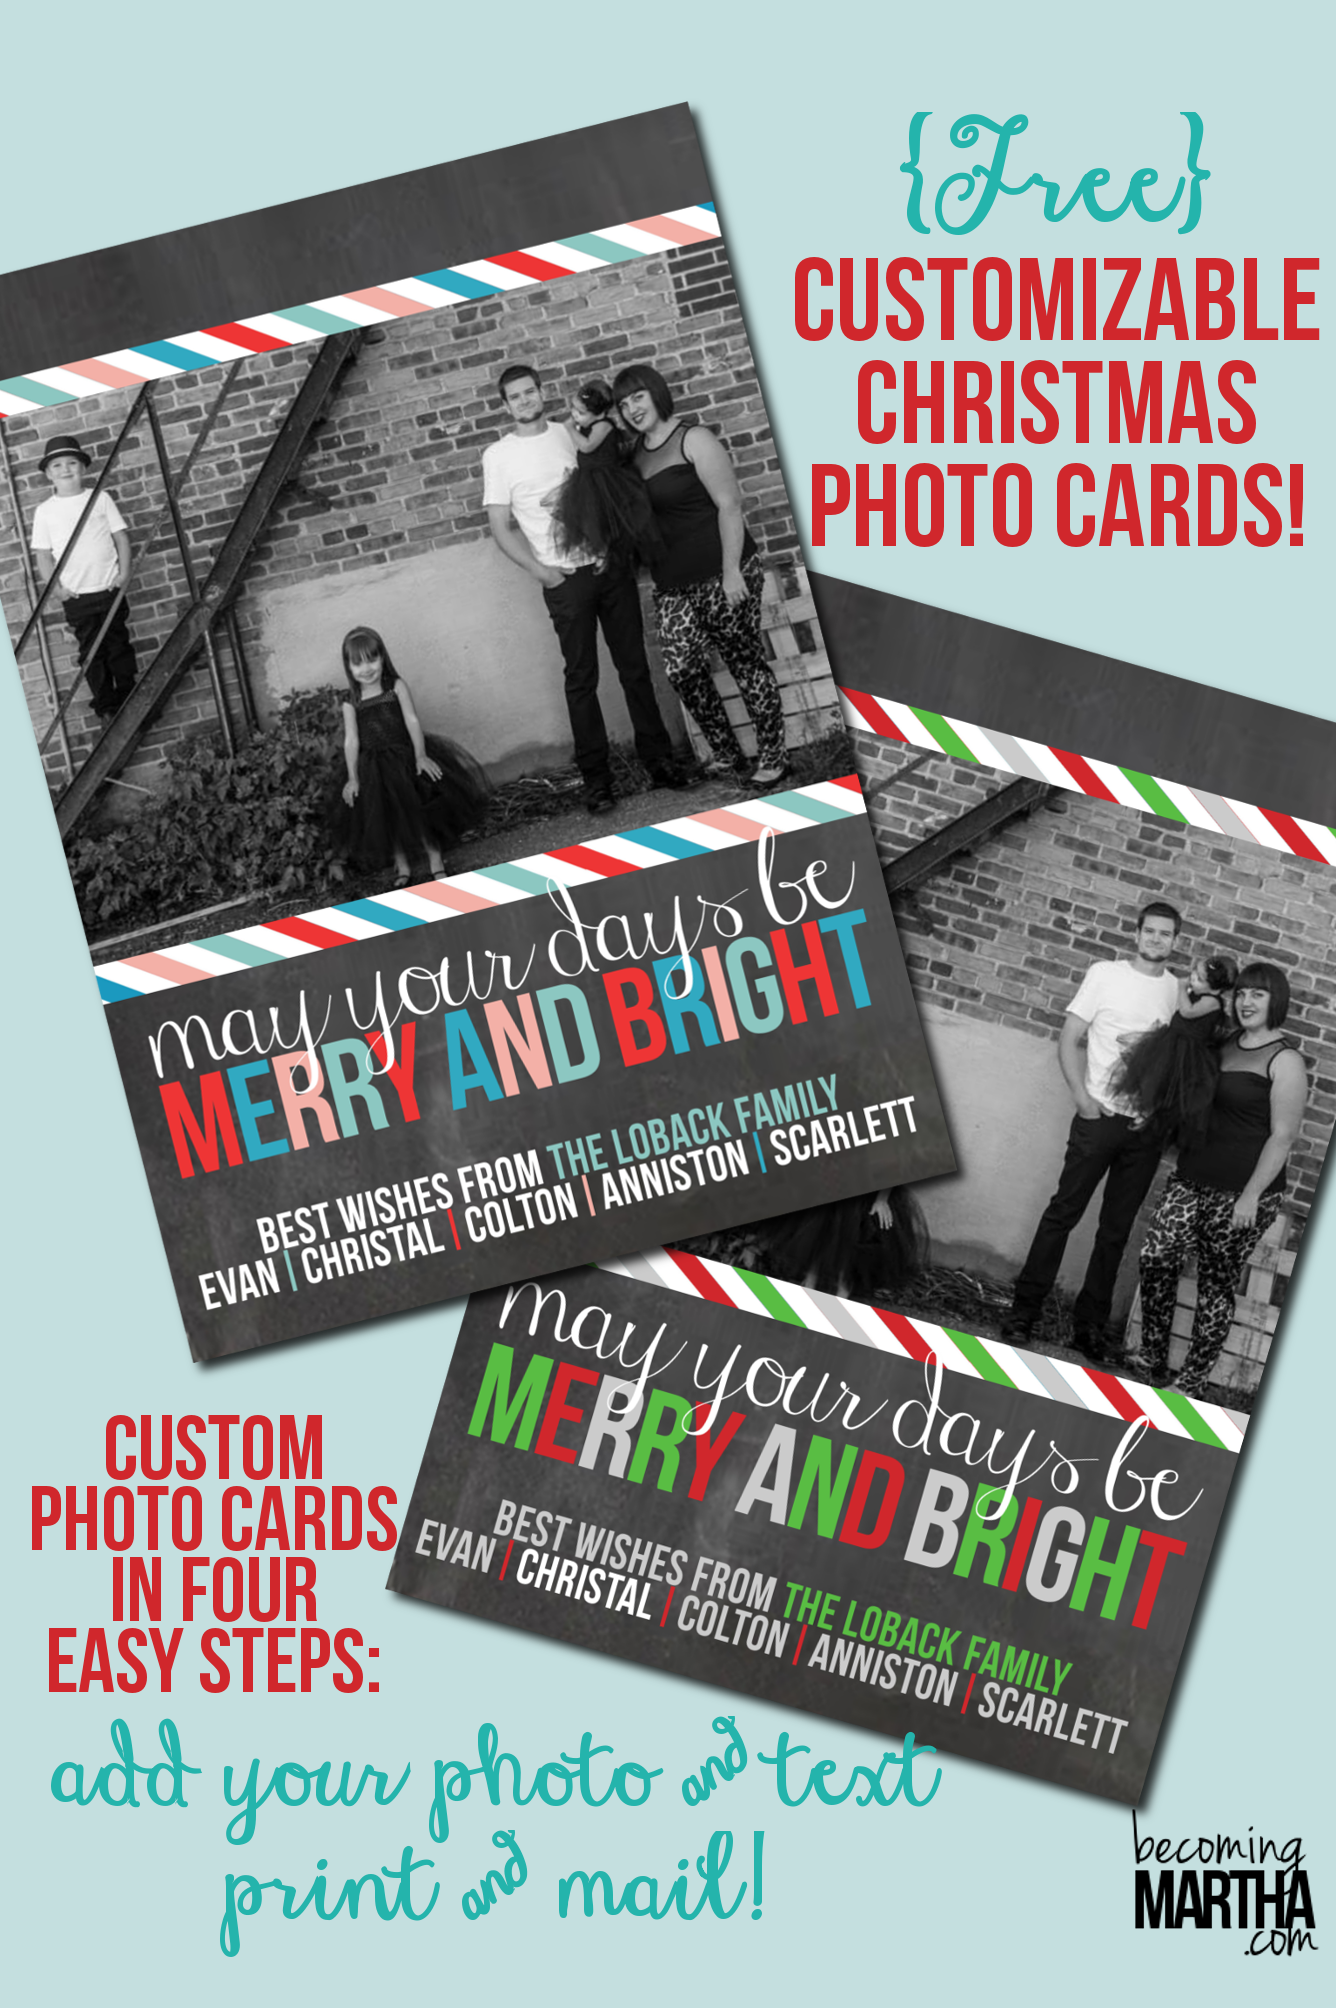 Free Printable Christmas Cards Customize with Your Own